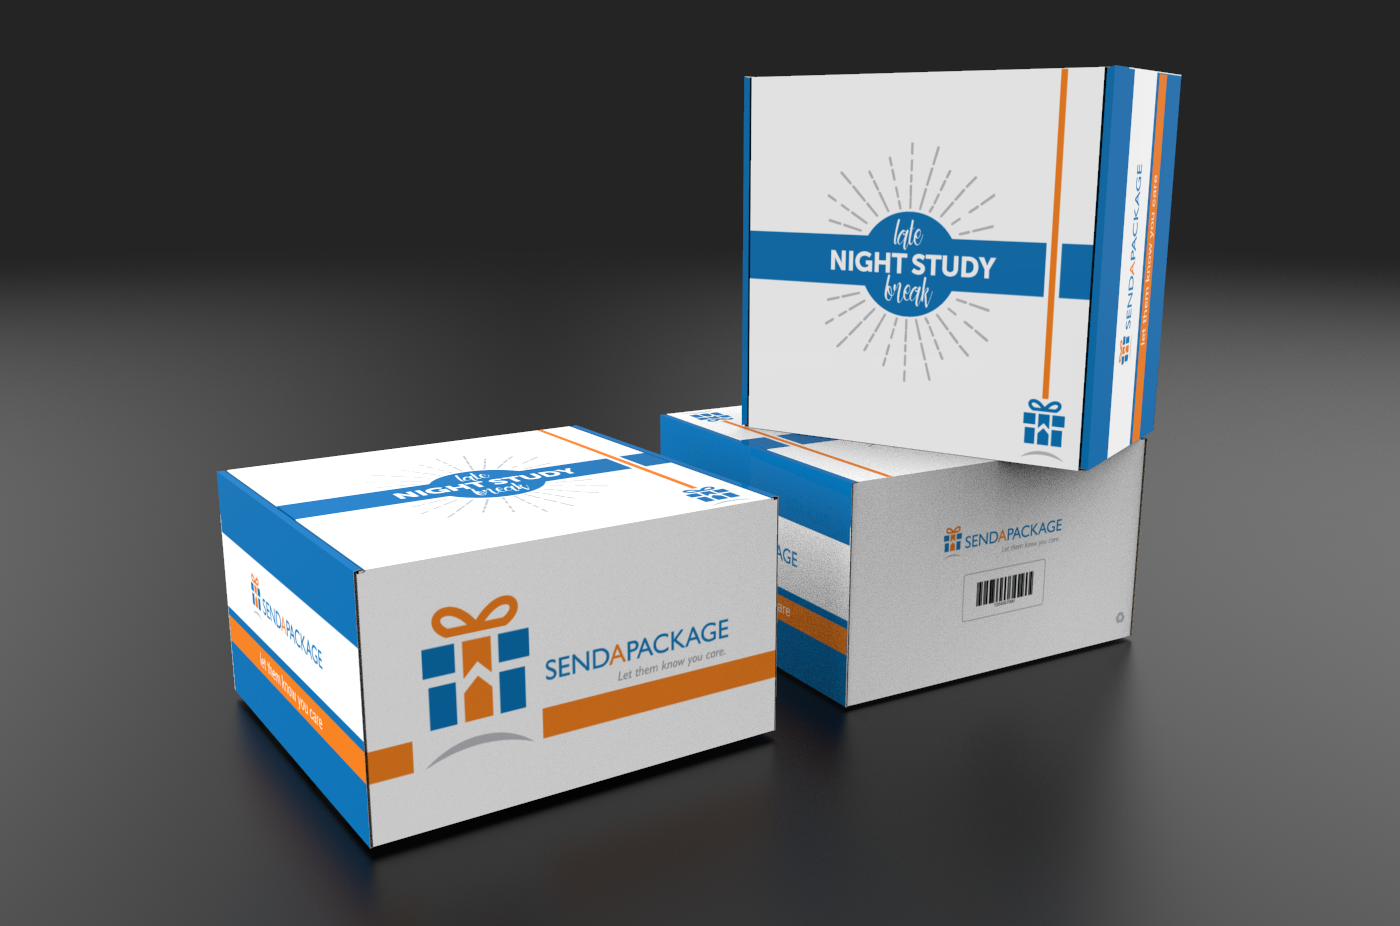 Playful Professional Packaging Design For Gift Baskets Llc By Pointgrfx Design 19725145